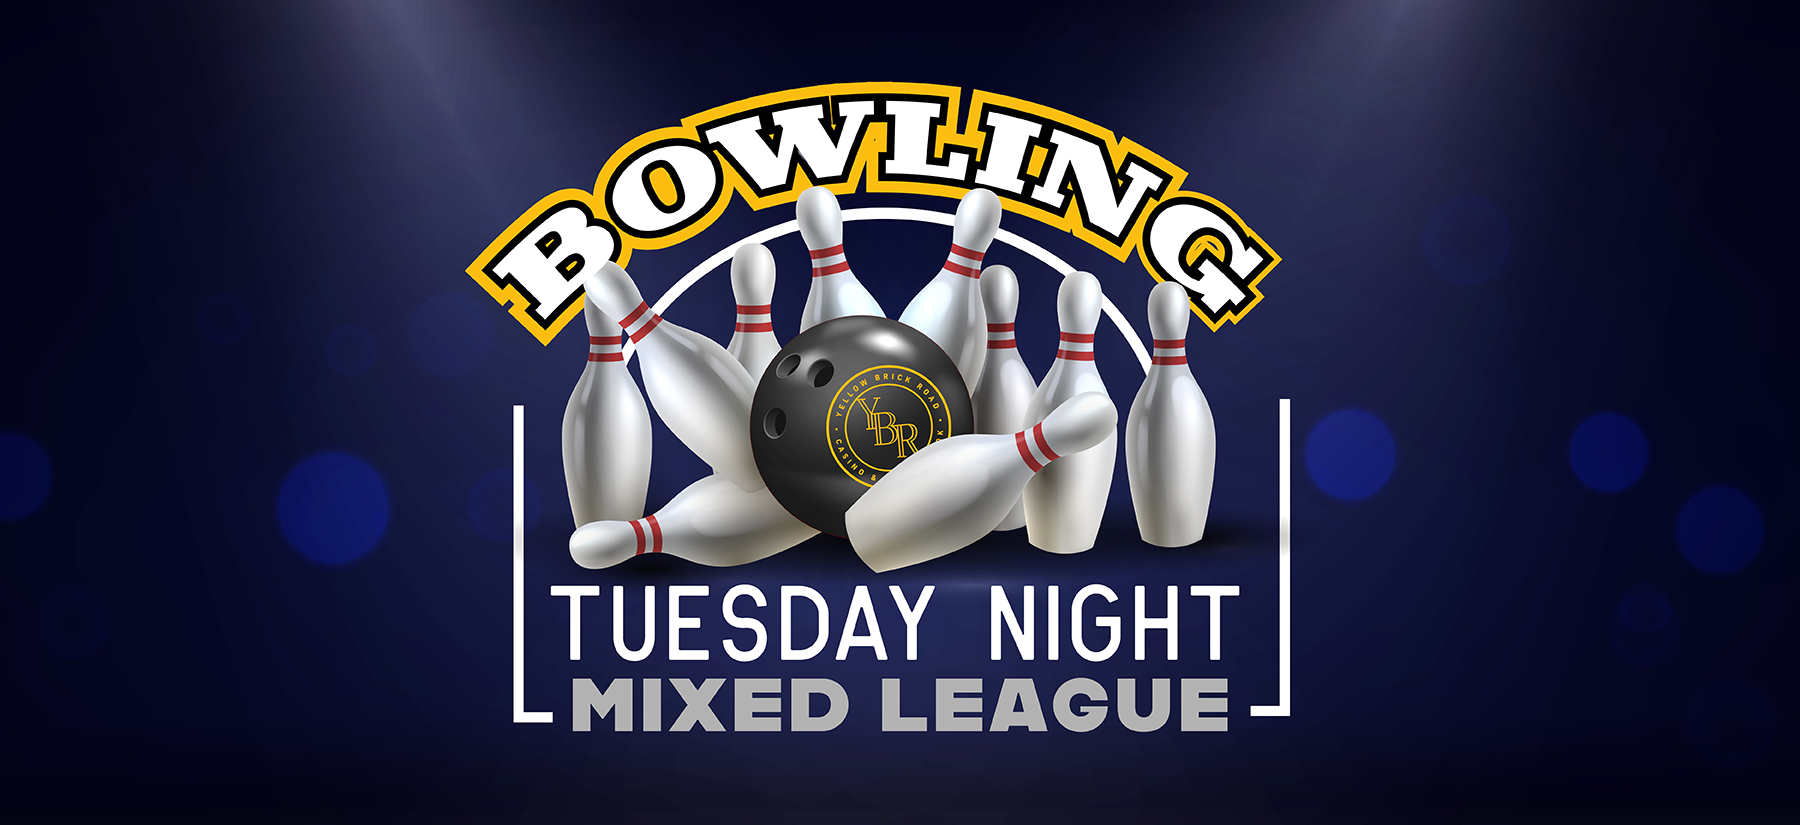 YBR Strikes with New Bowling League